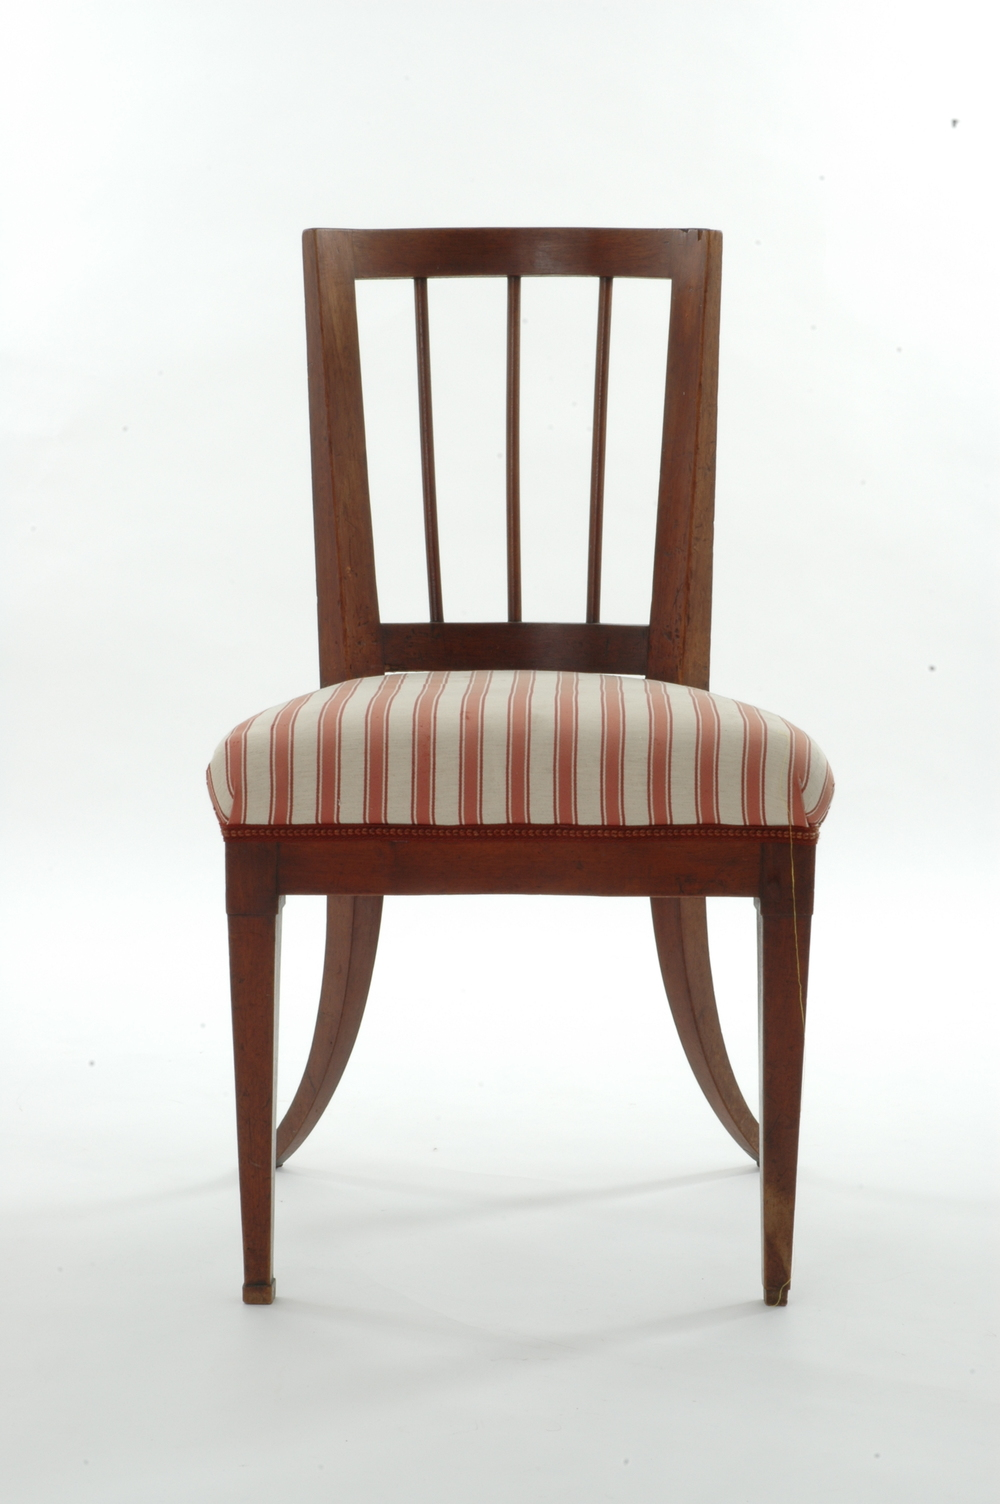 An Early 19t C. Biedermeier Chair From Noble Provenance